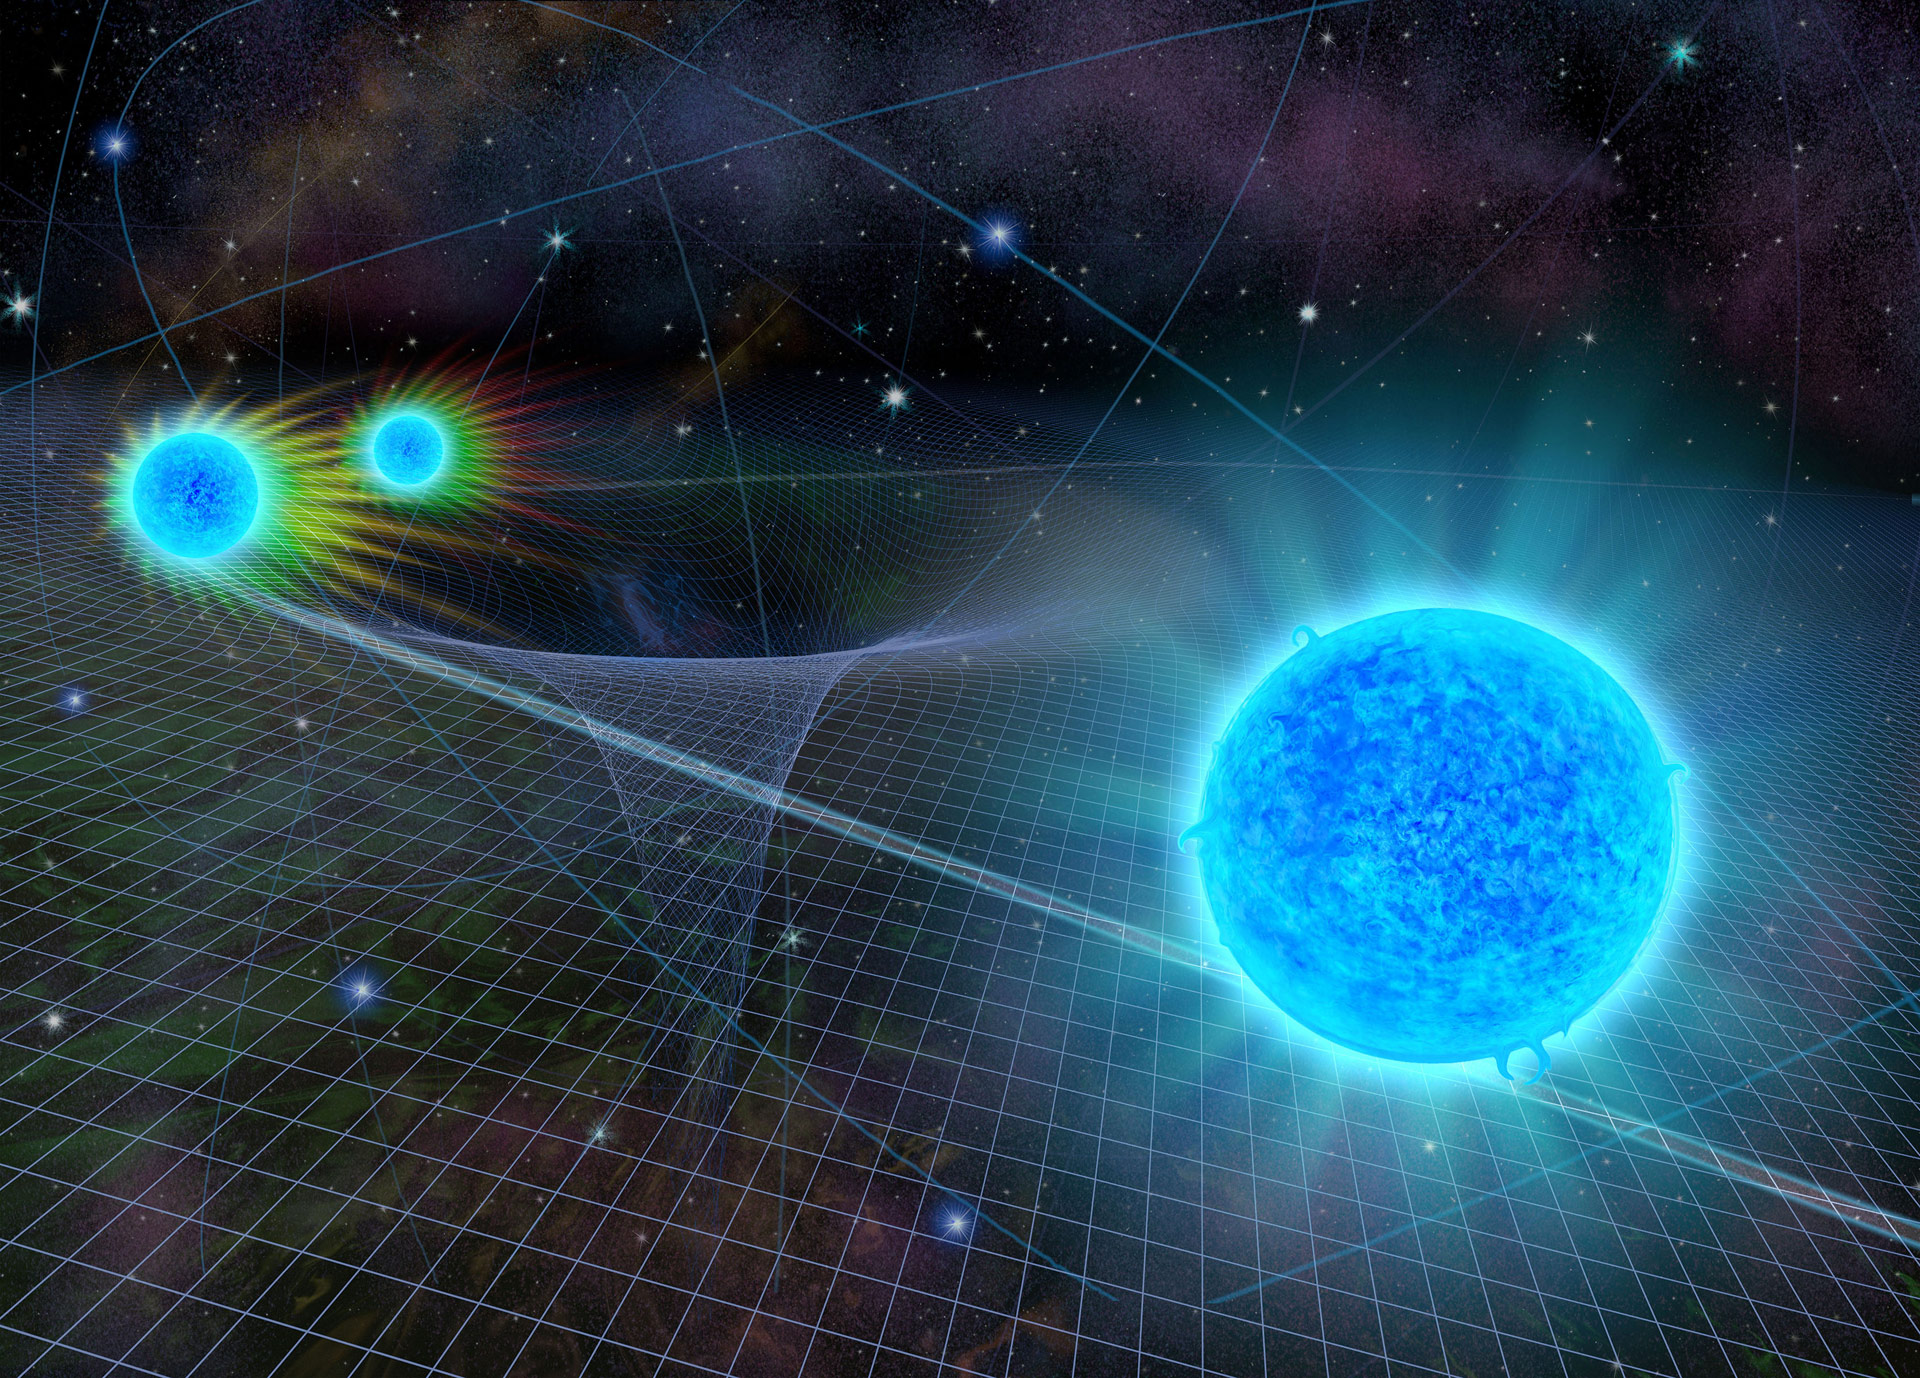 10 Crucial Things That Result From Einstein's Theories of Relativity